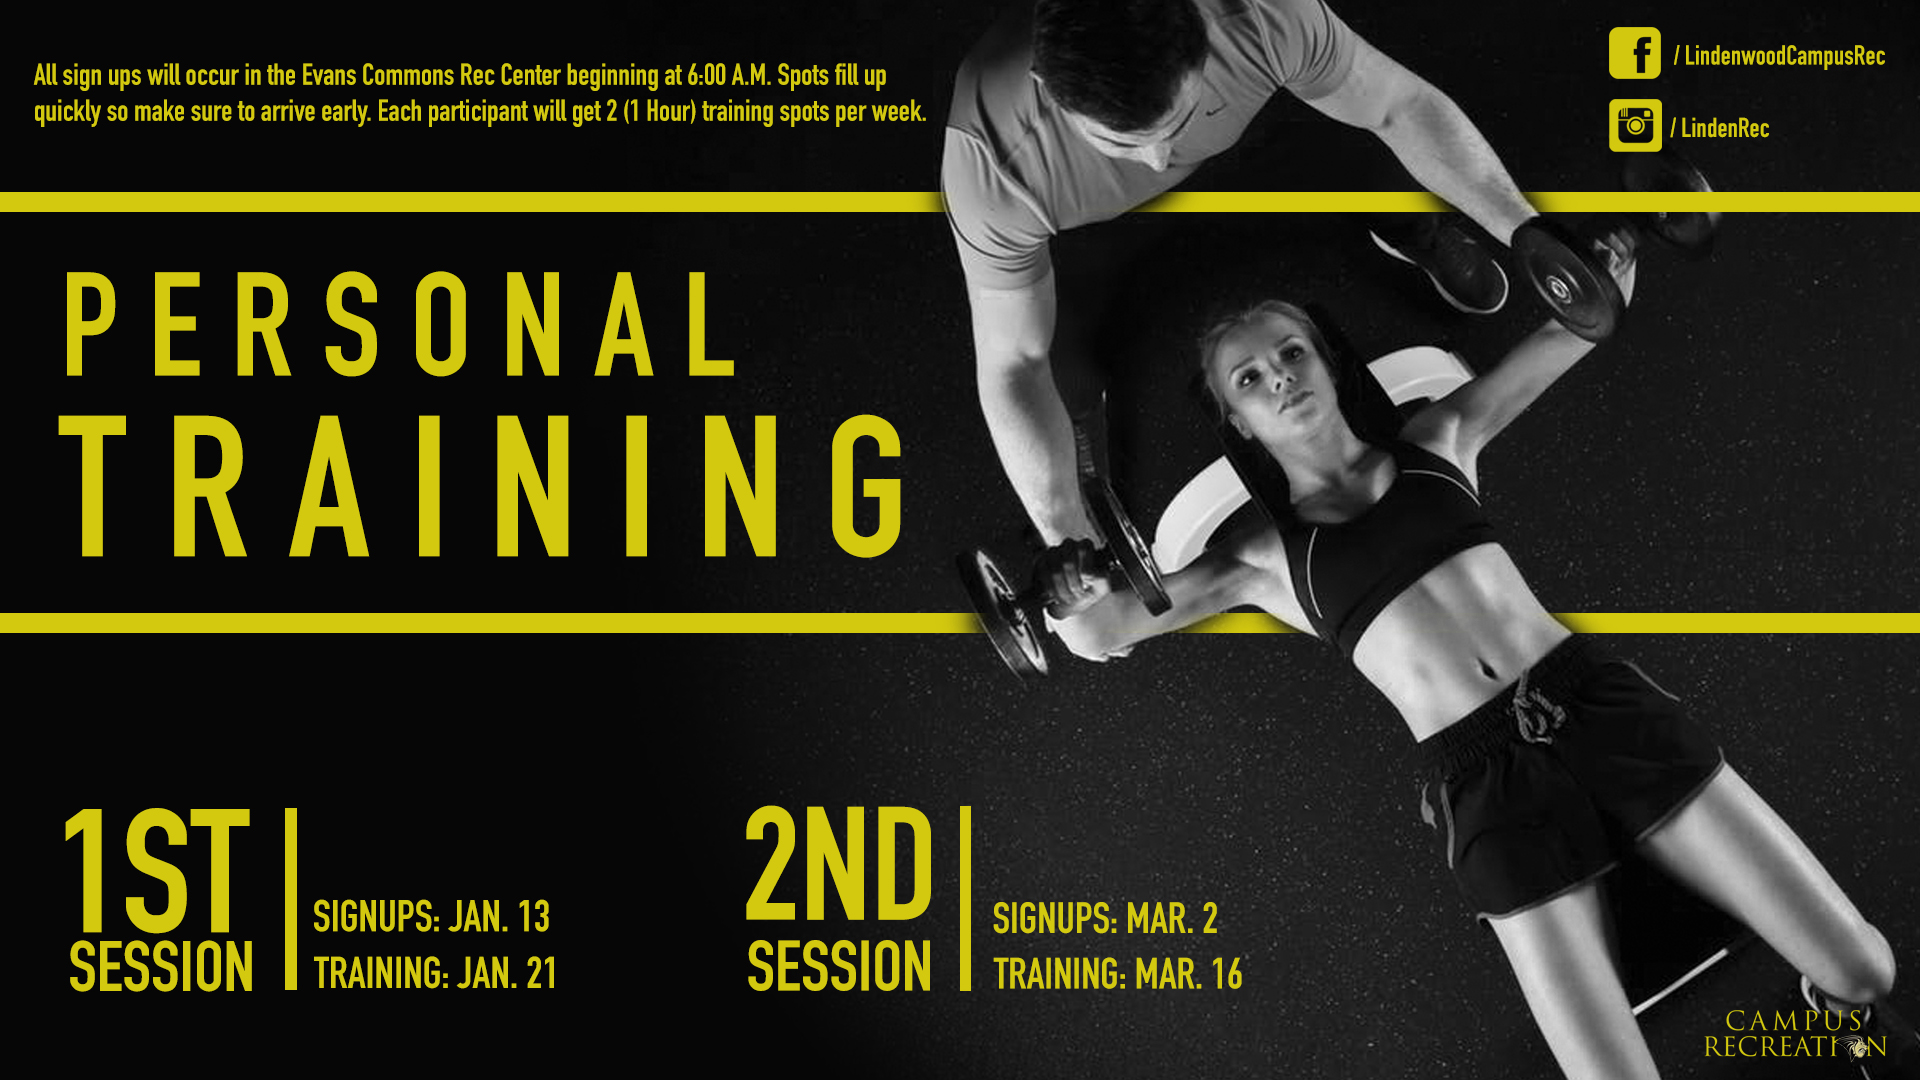 Spring 2020 Personal Training Graphic